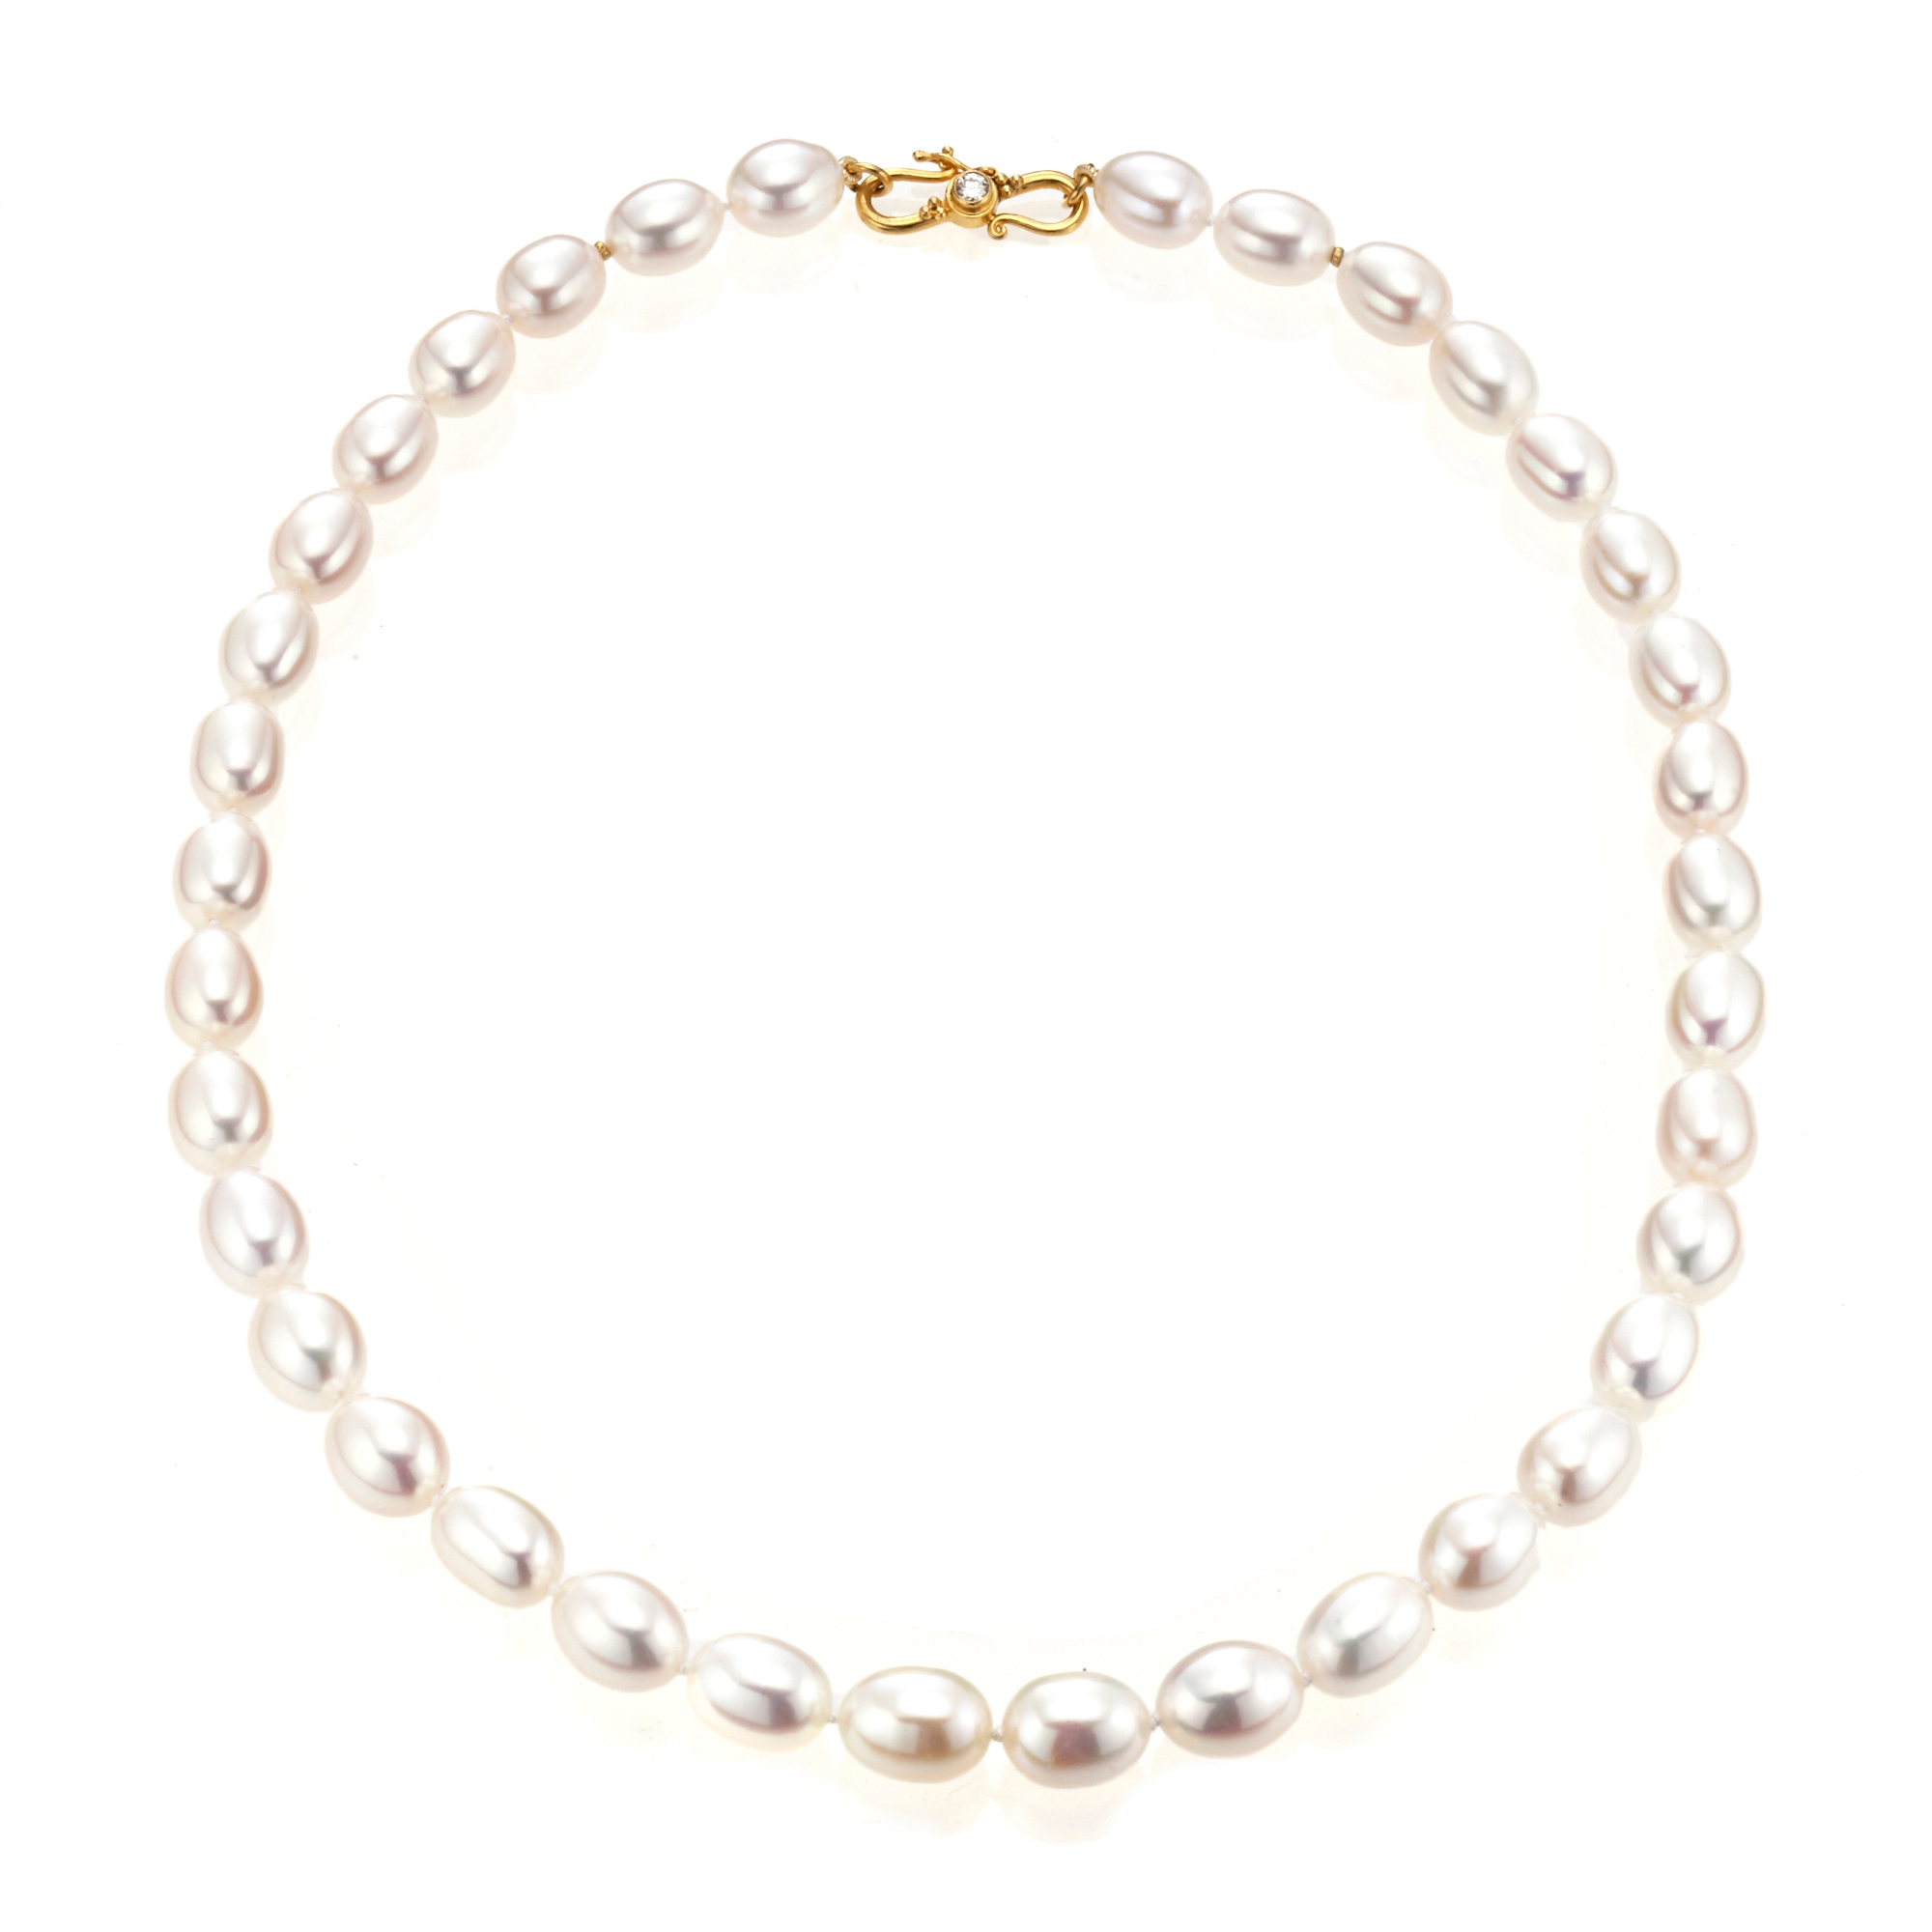 Gump's Baroque Pearl Necklace With Gold and Diamond Clasp